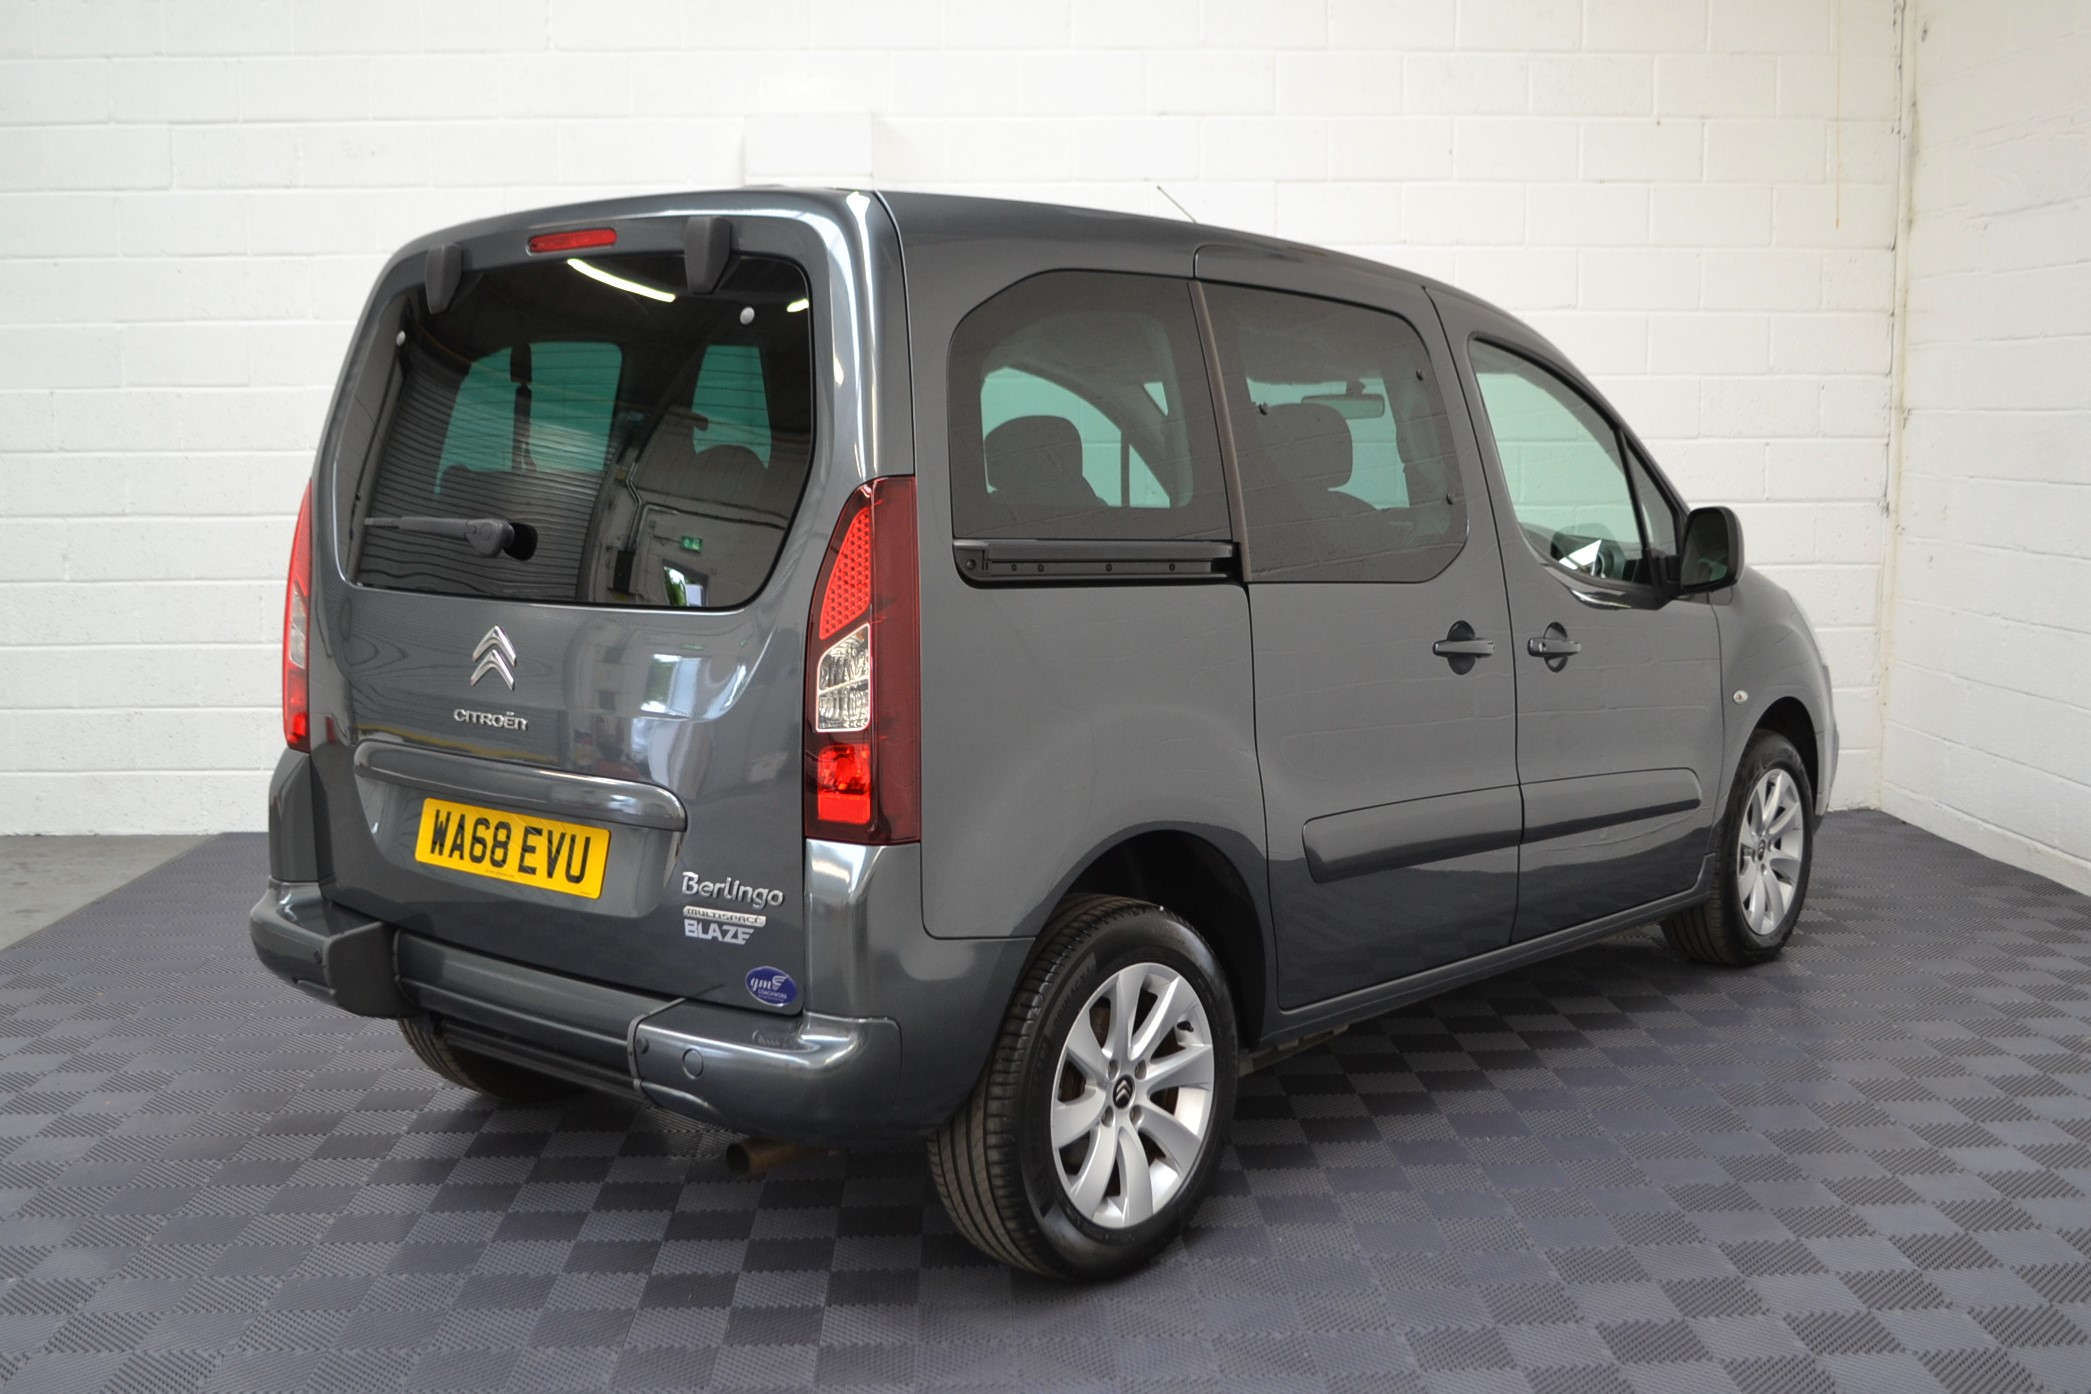 Disabled Cars For Sale Bristol Wheelchair Accessible Vehicles Used For Sale Somerset Devon Dorset Bath Peugeot Partner WA68 EVU 12